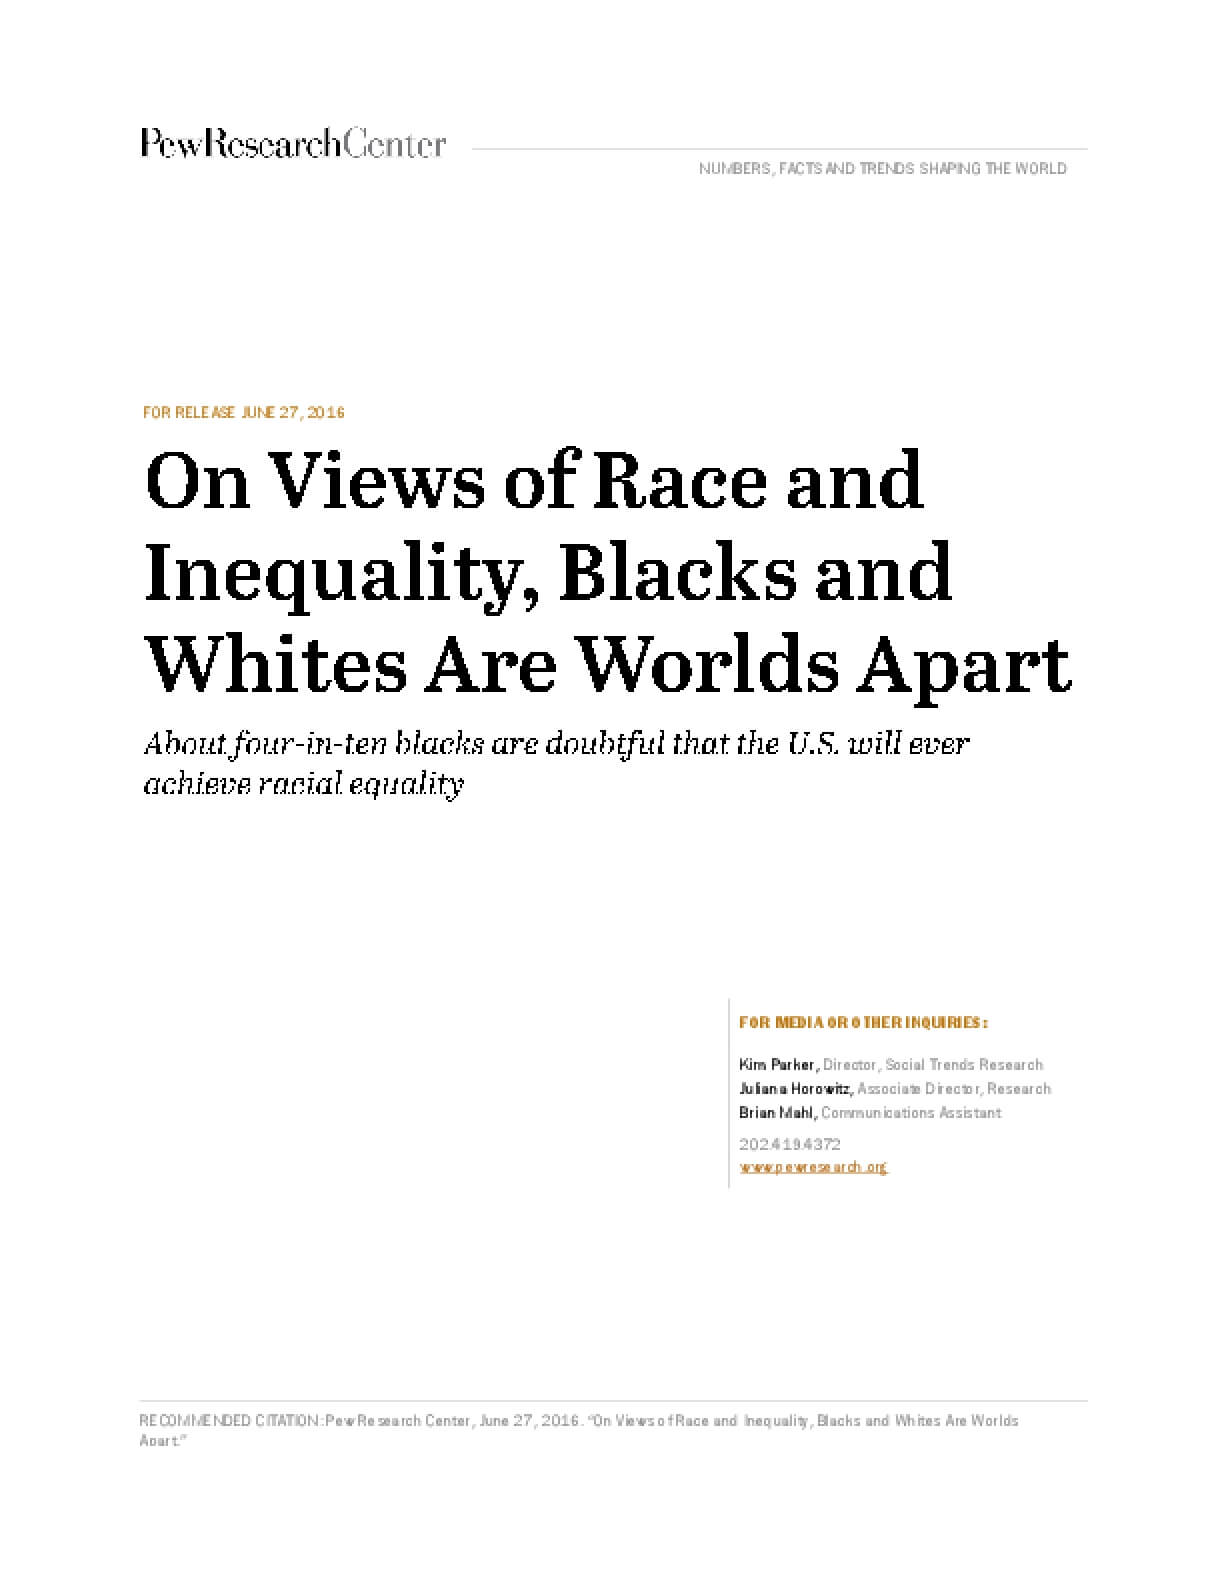 On Views of Race and Inequality, Blacks and Whites Are Worlds Apart